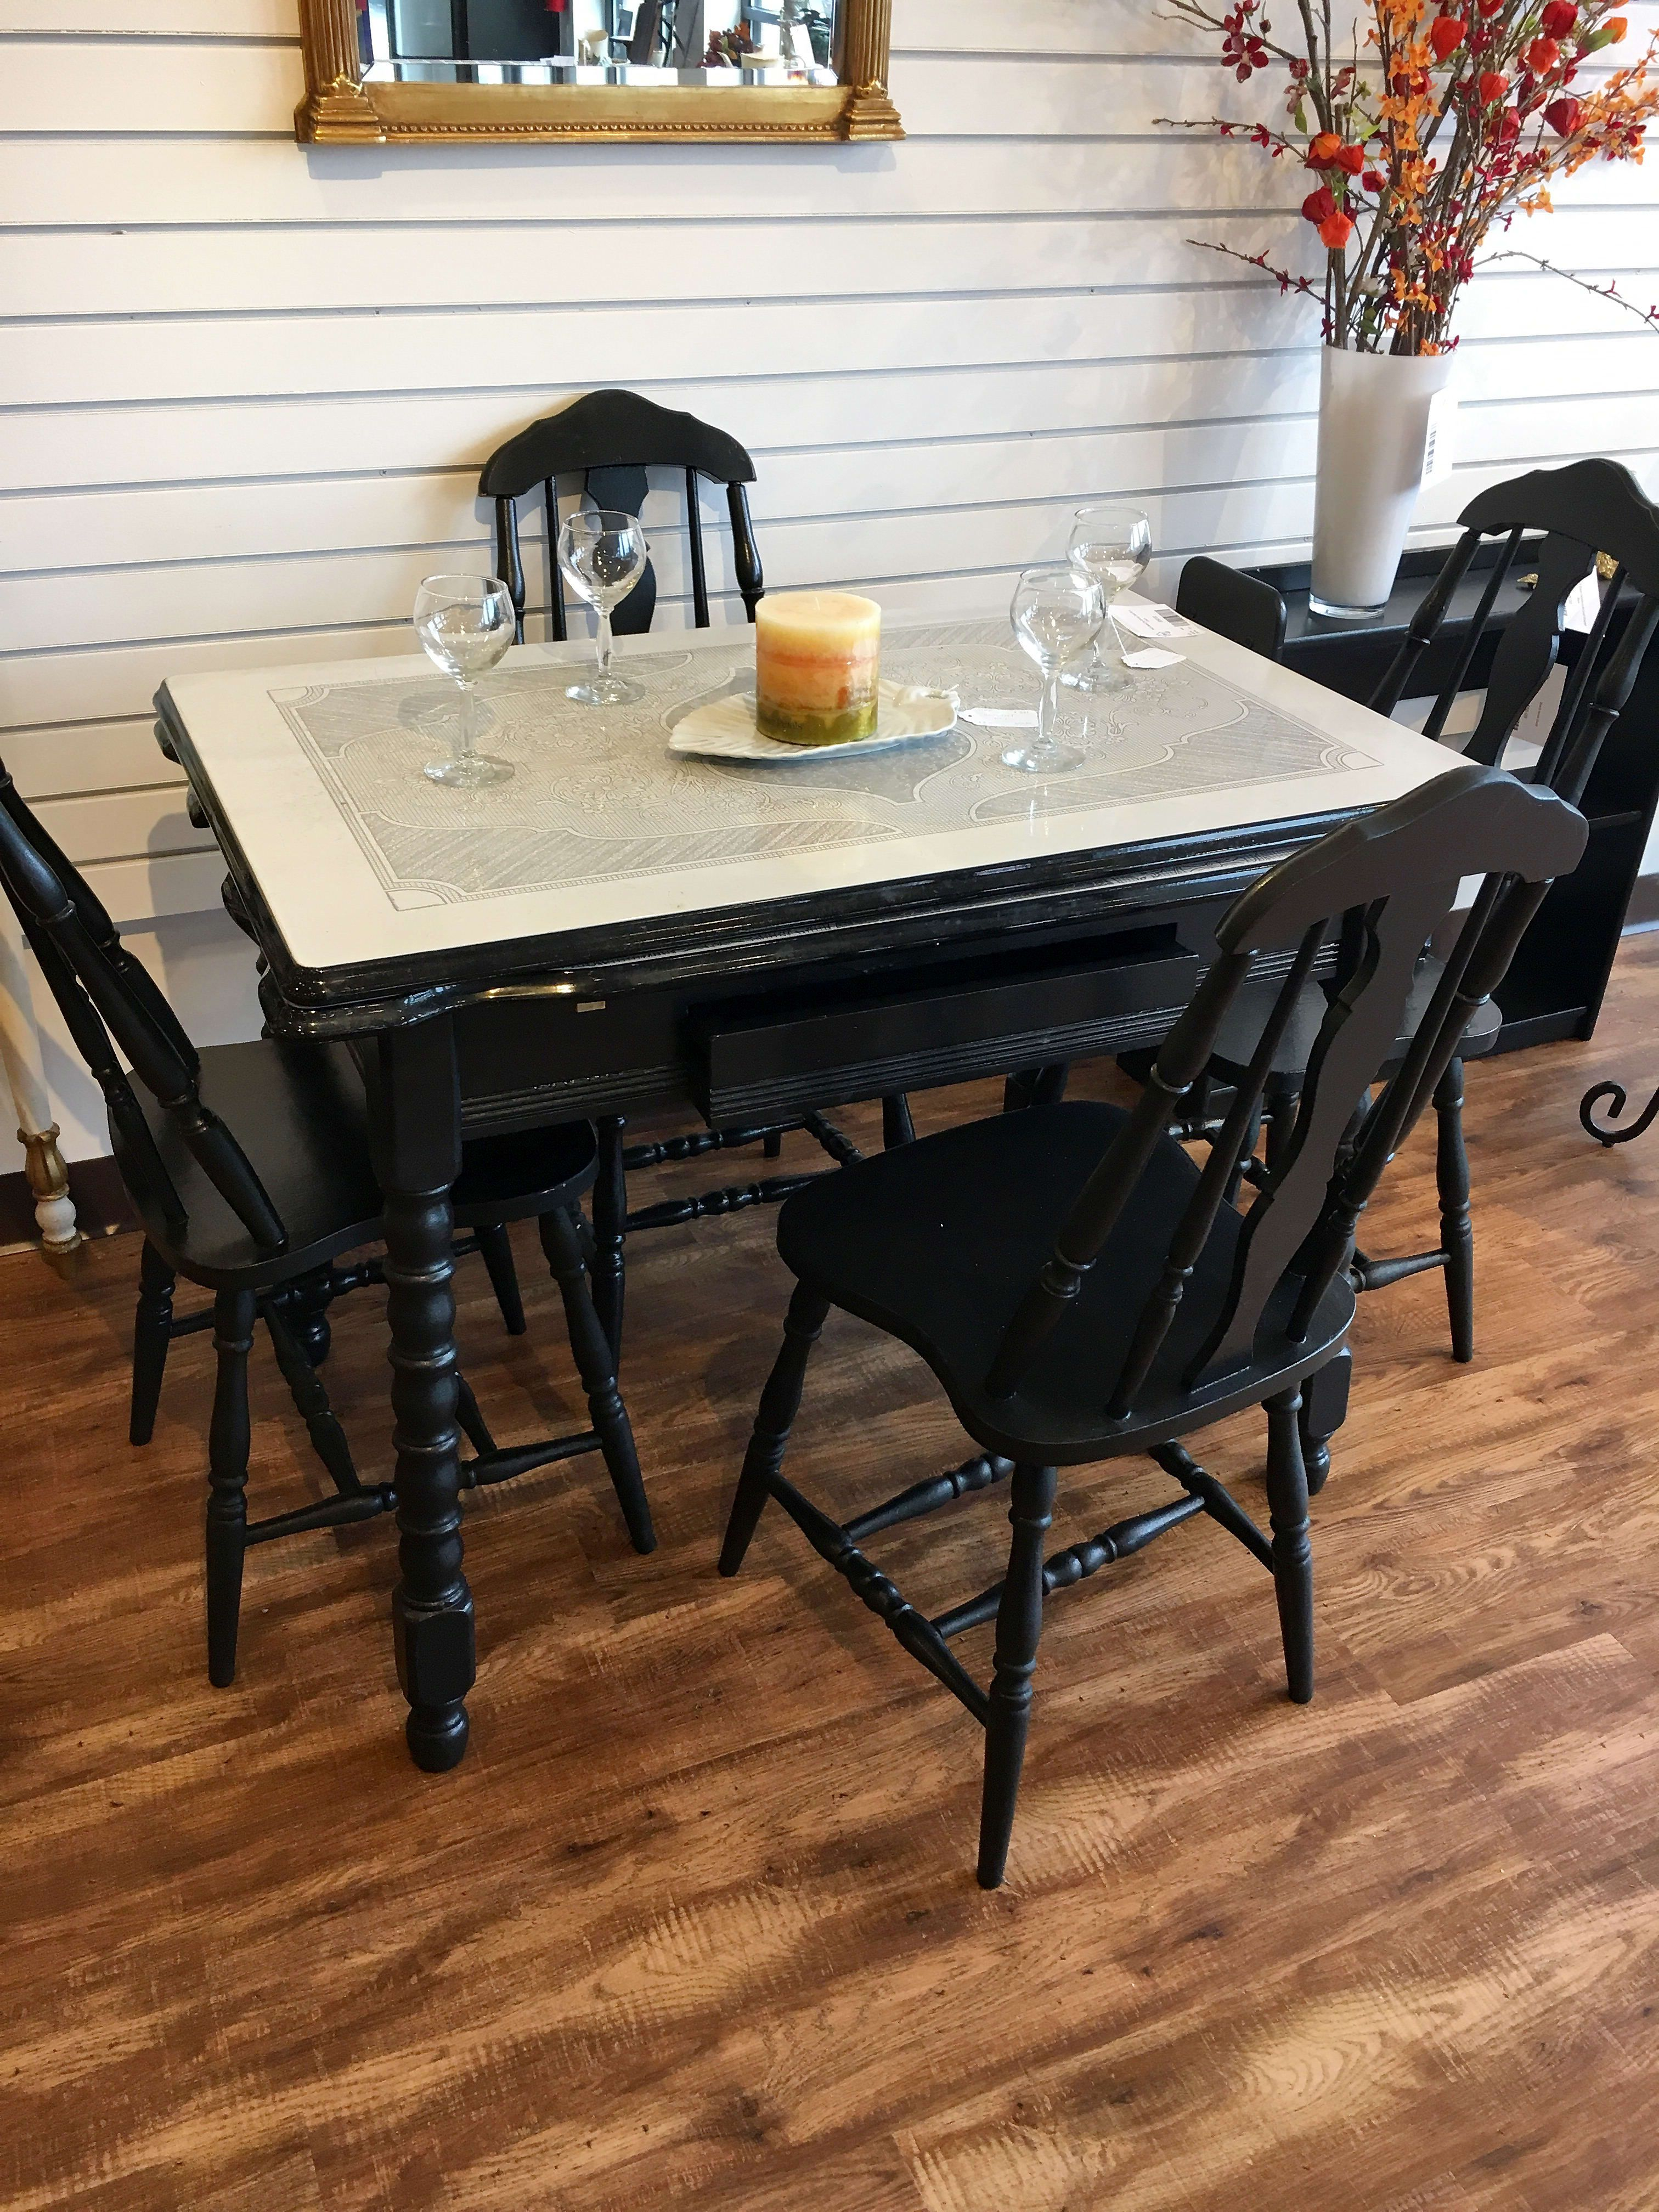 1940 s Metal Top Kitchen Table W 4 Chairs $150 00